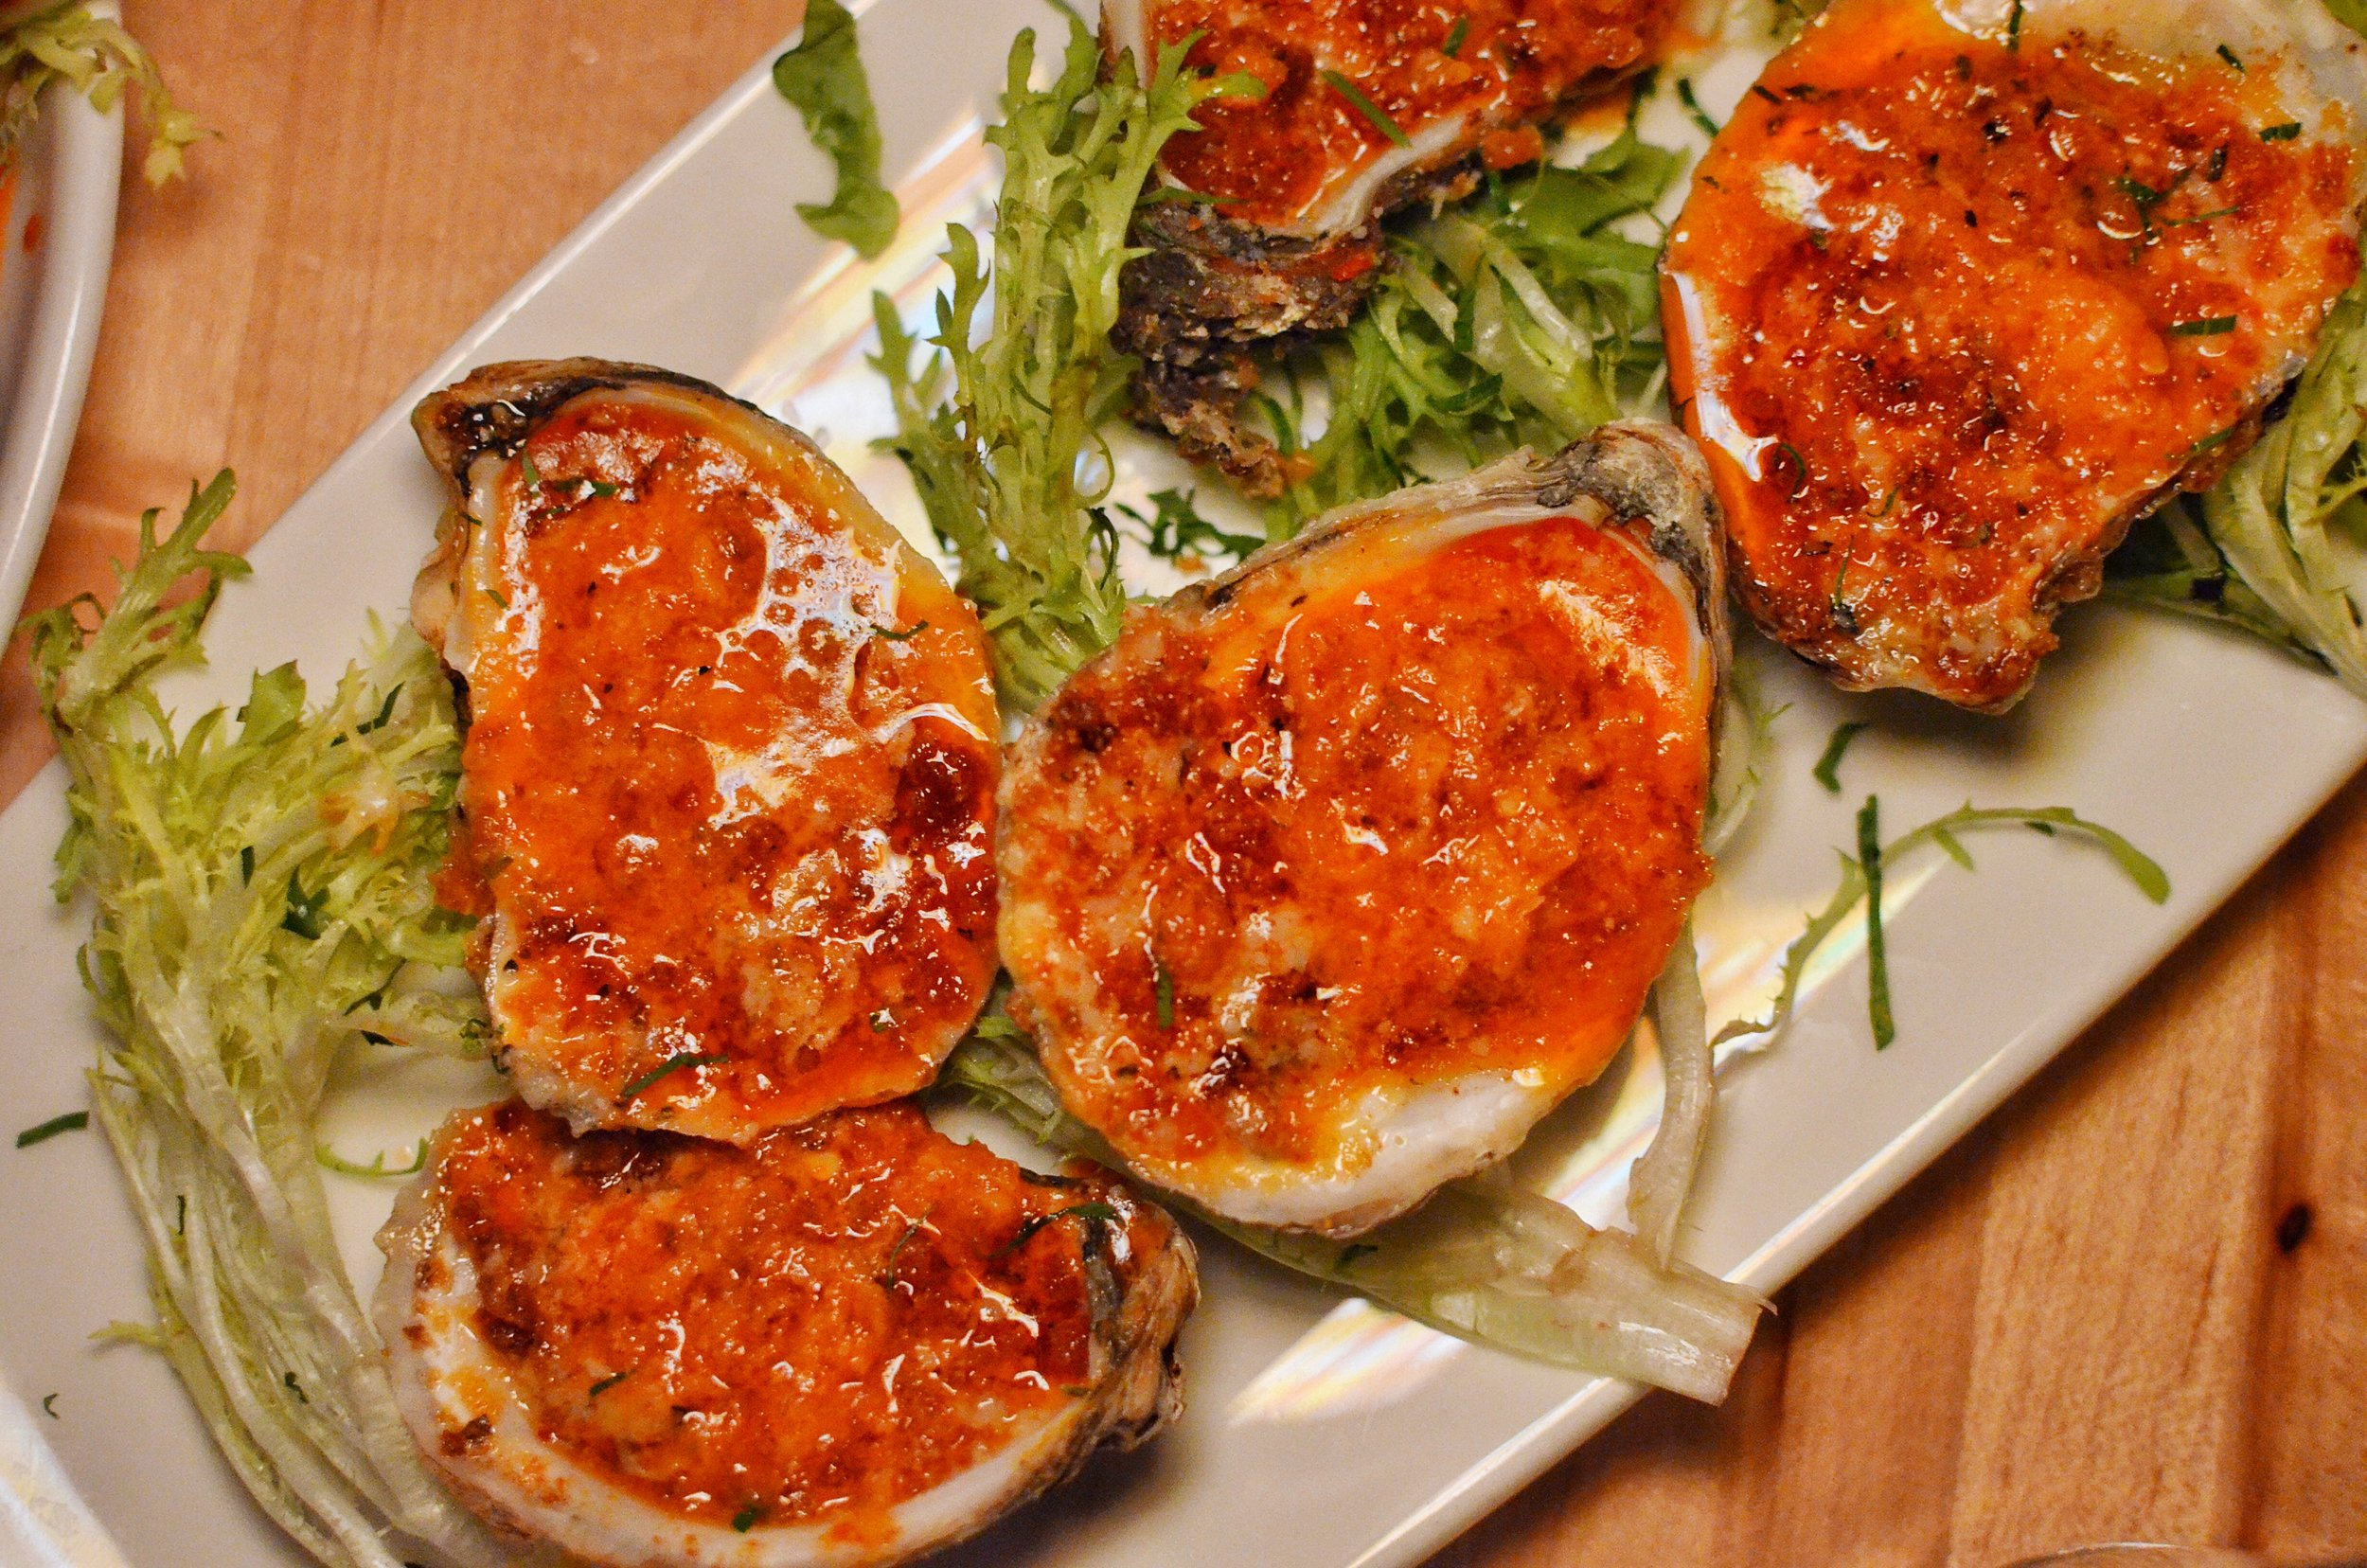 Grilled Oysters with Spicy Garlic Butter & Breadcrumbs